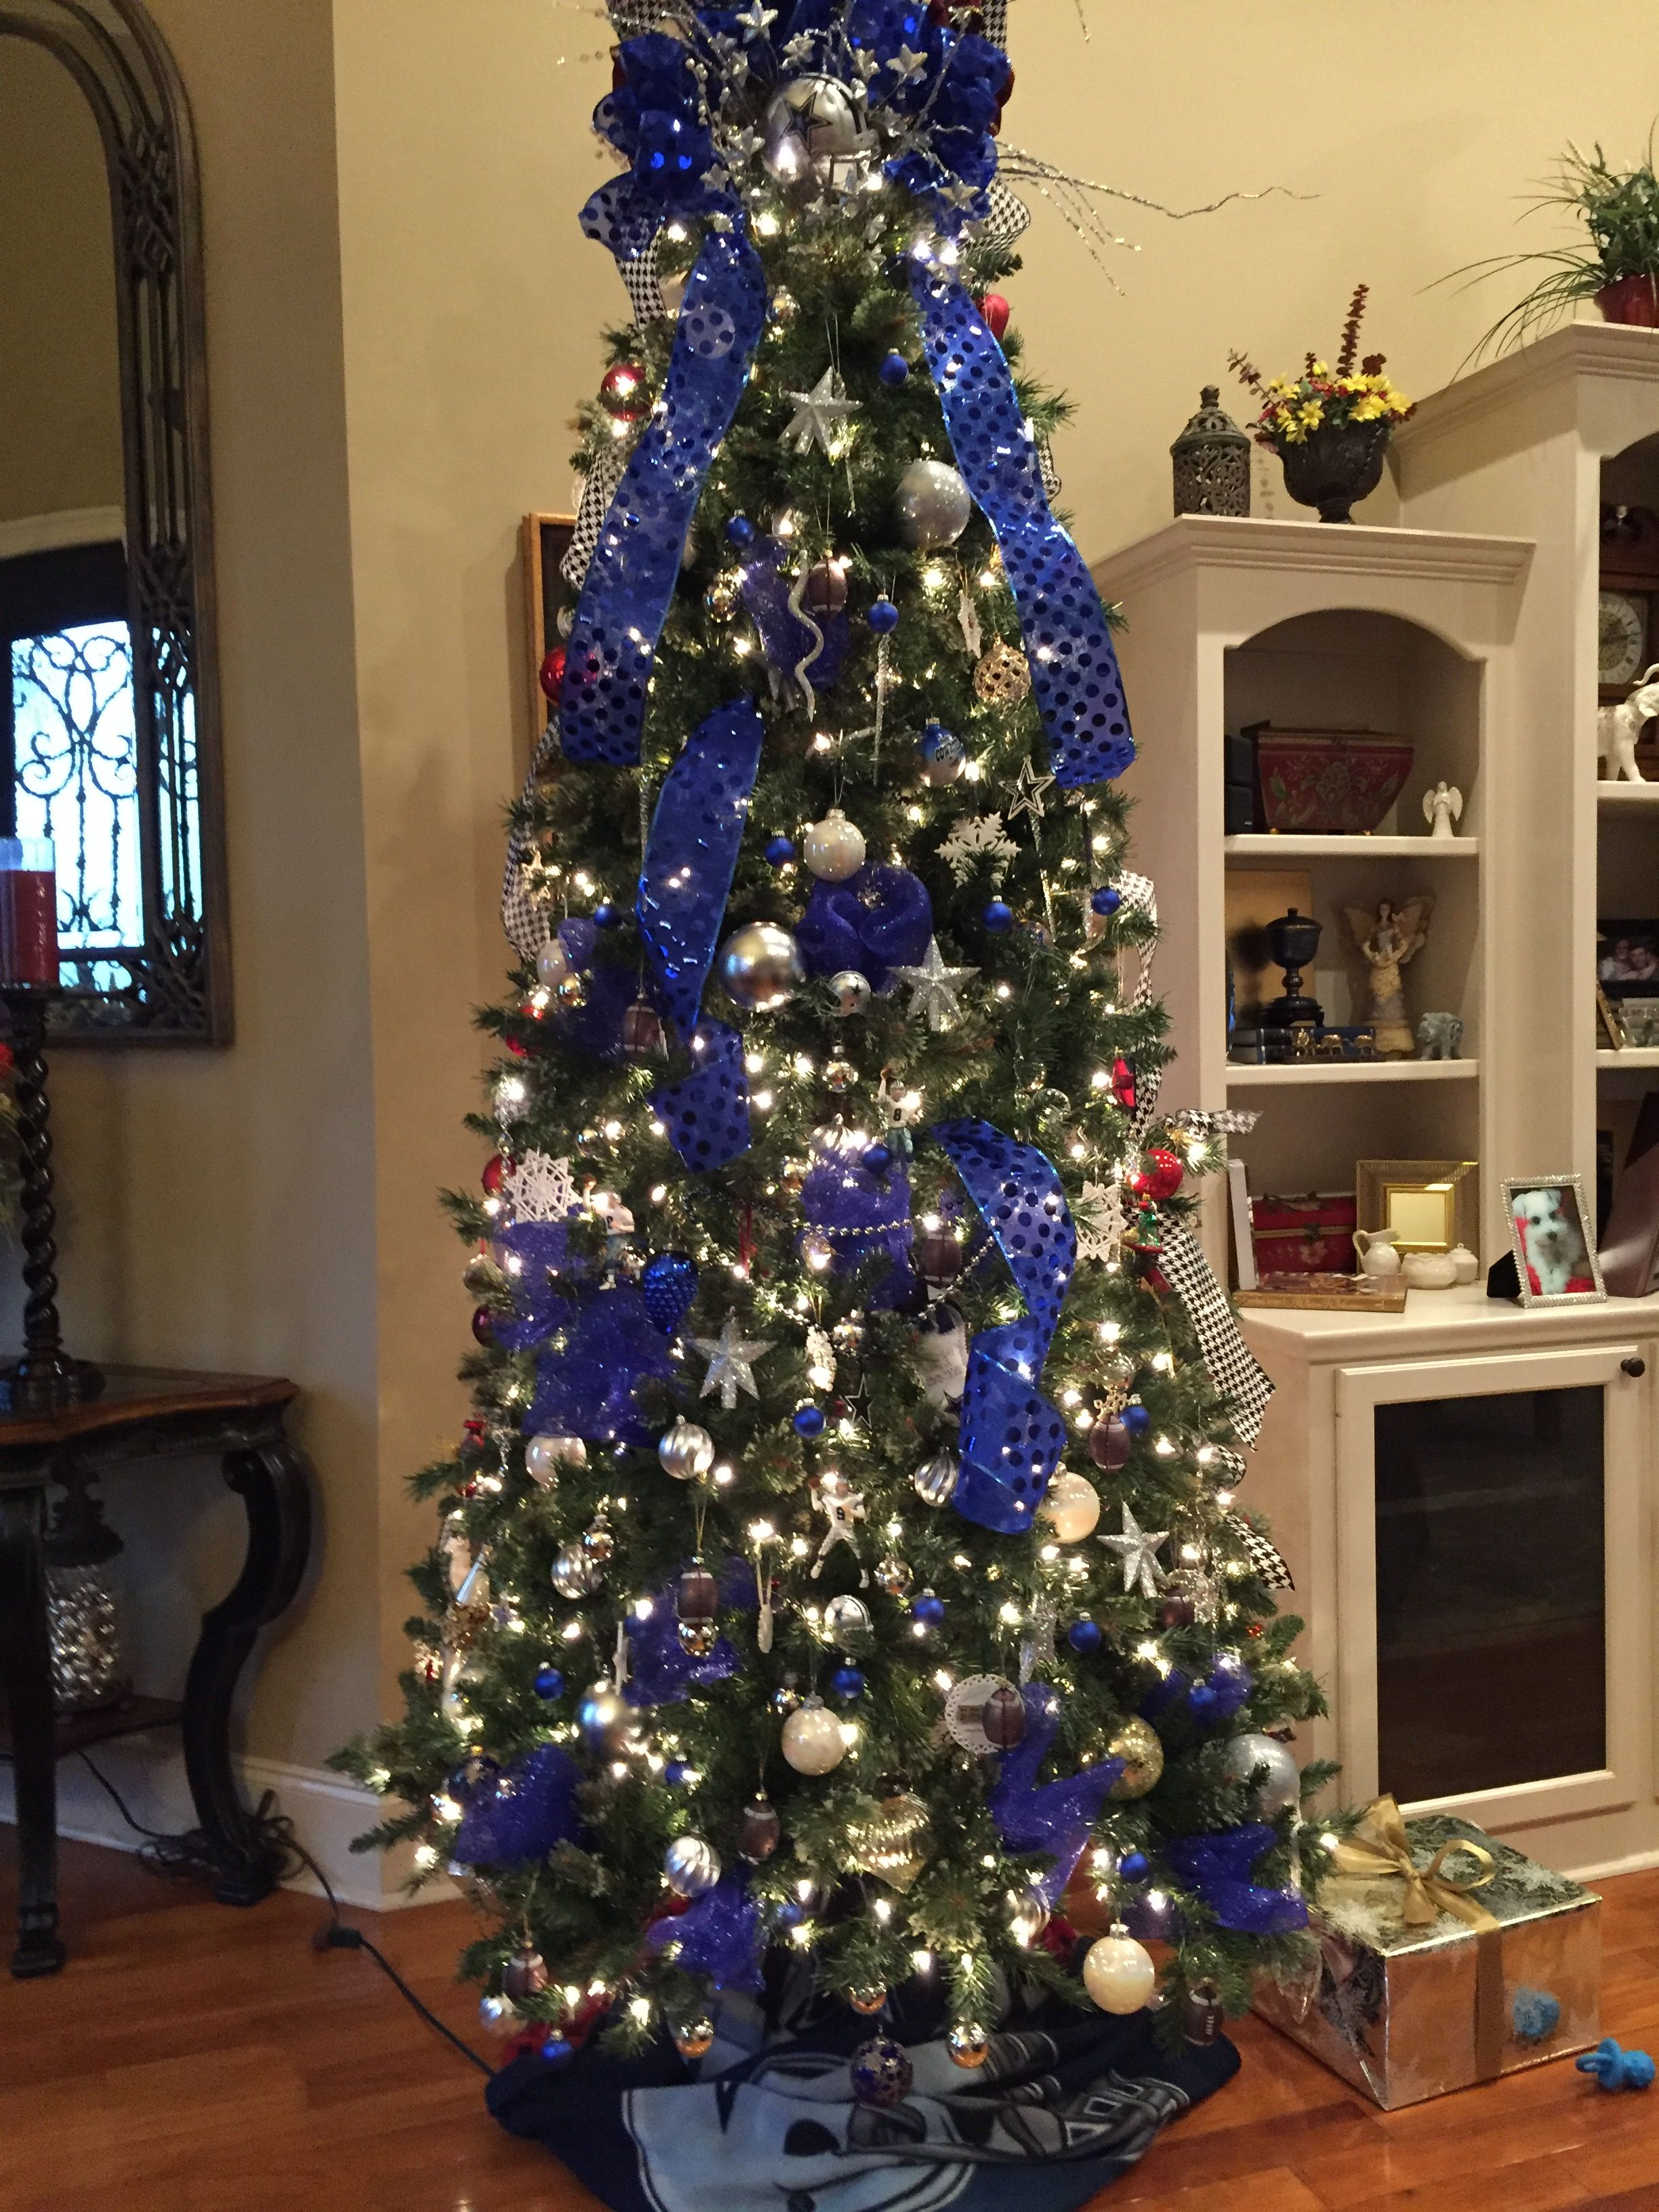 Dallas Cowboys Christmas tree | Dallas cowboys christmas ...